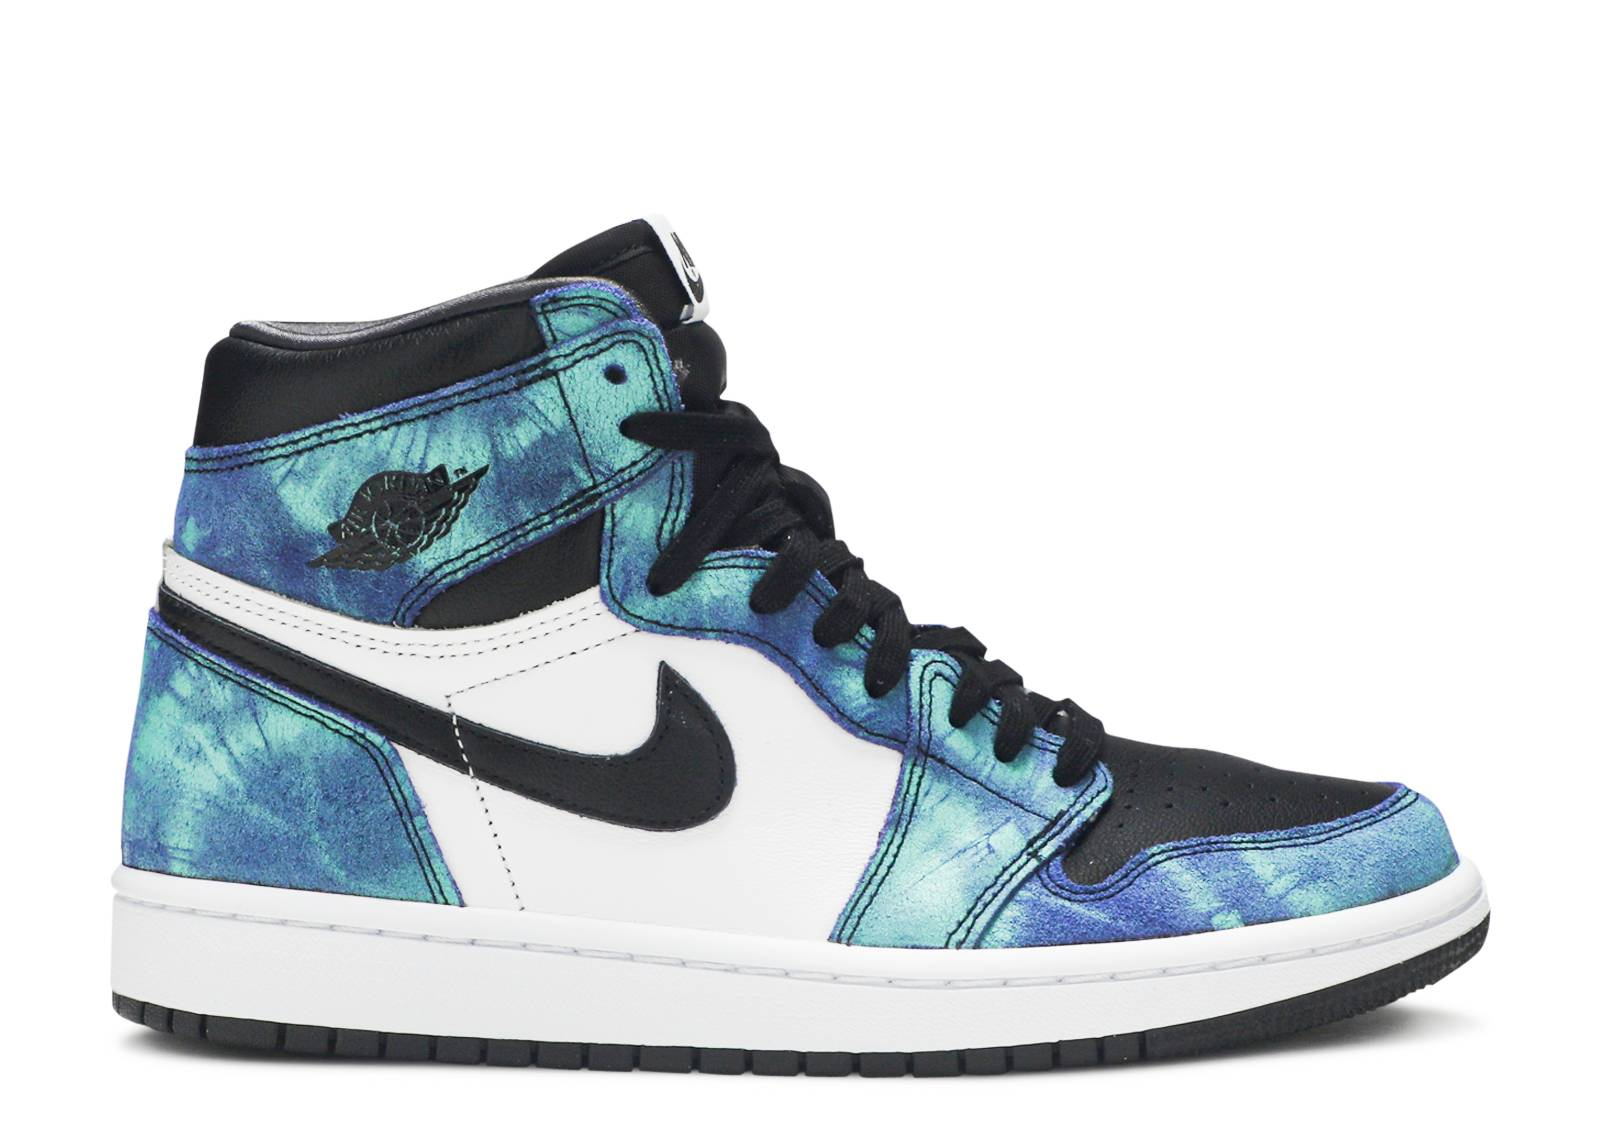 Air Jordan 1 Wmns Retro High OG 'Tie-Dye'